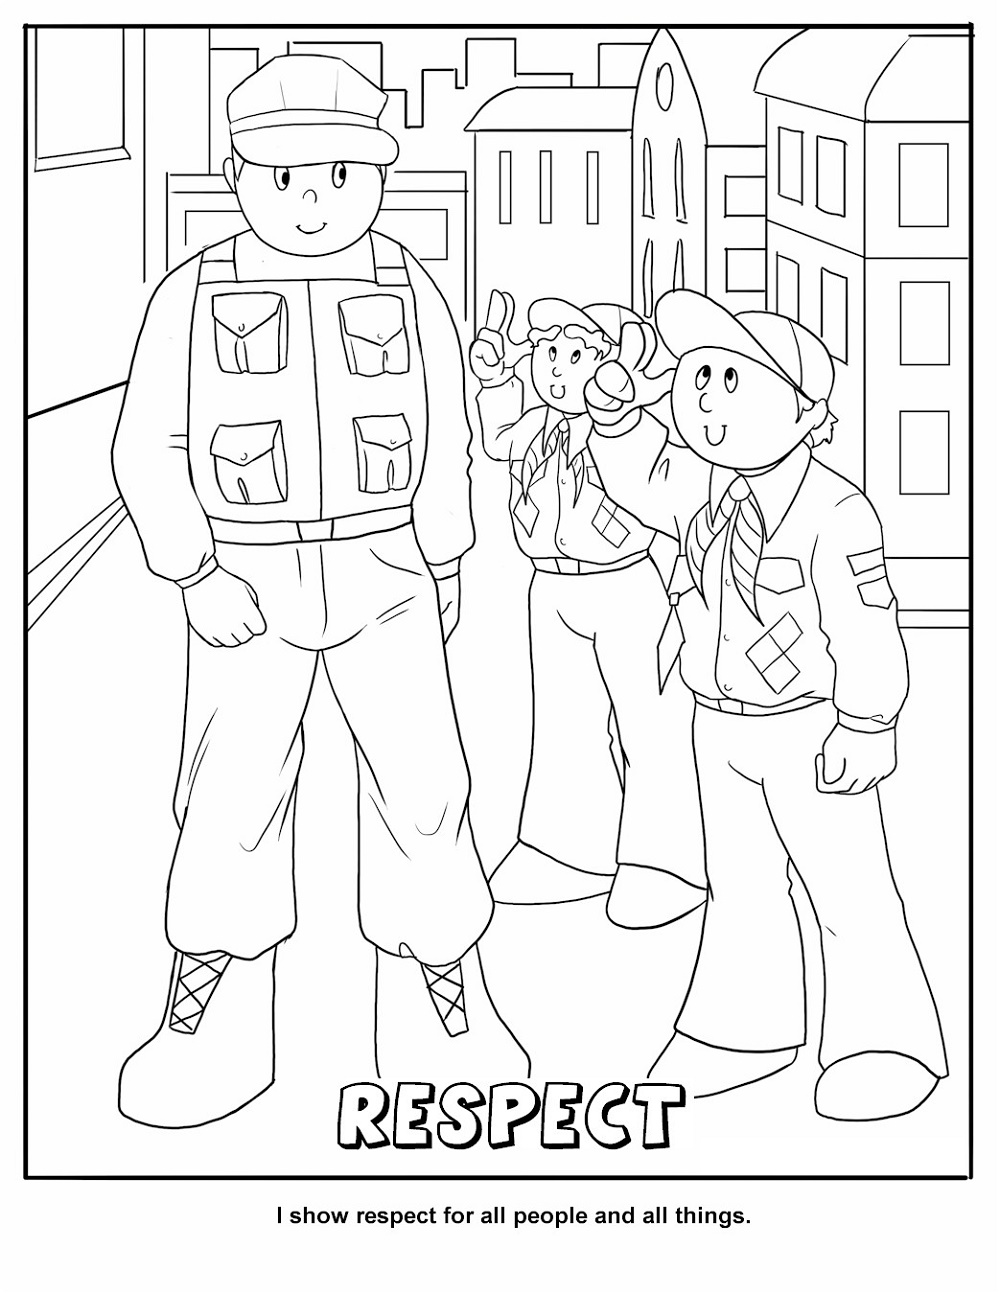 Cub Scout Coloring Pages Respect